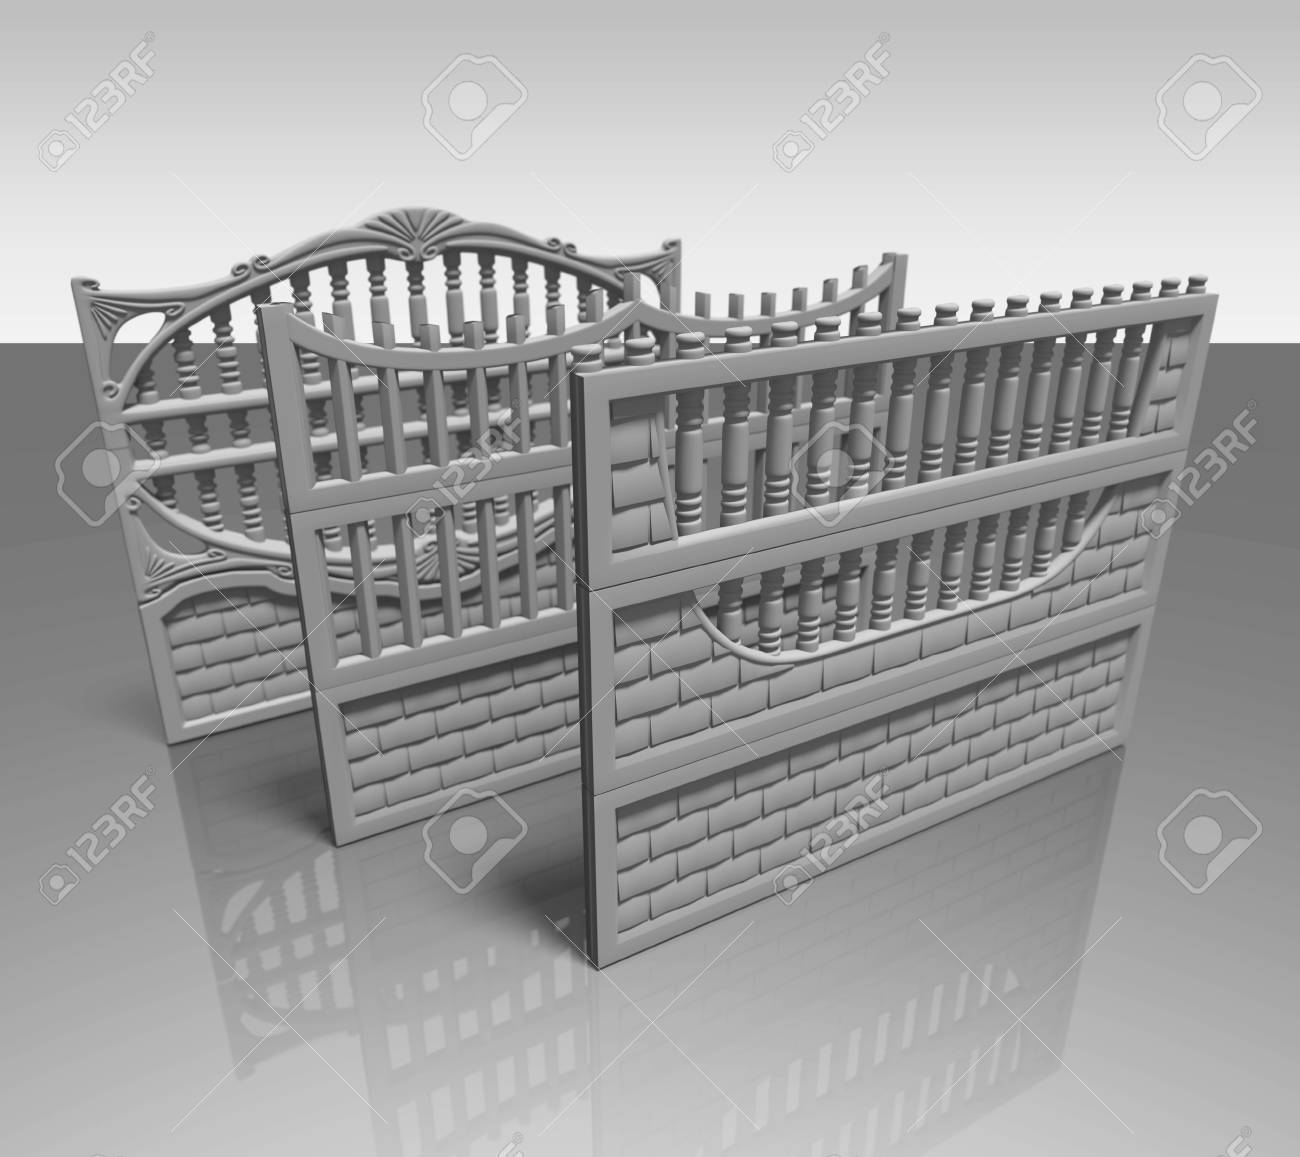 Illustration of a concrete fence on white background, product image to be included in the catalog - 37071805